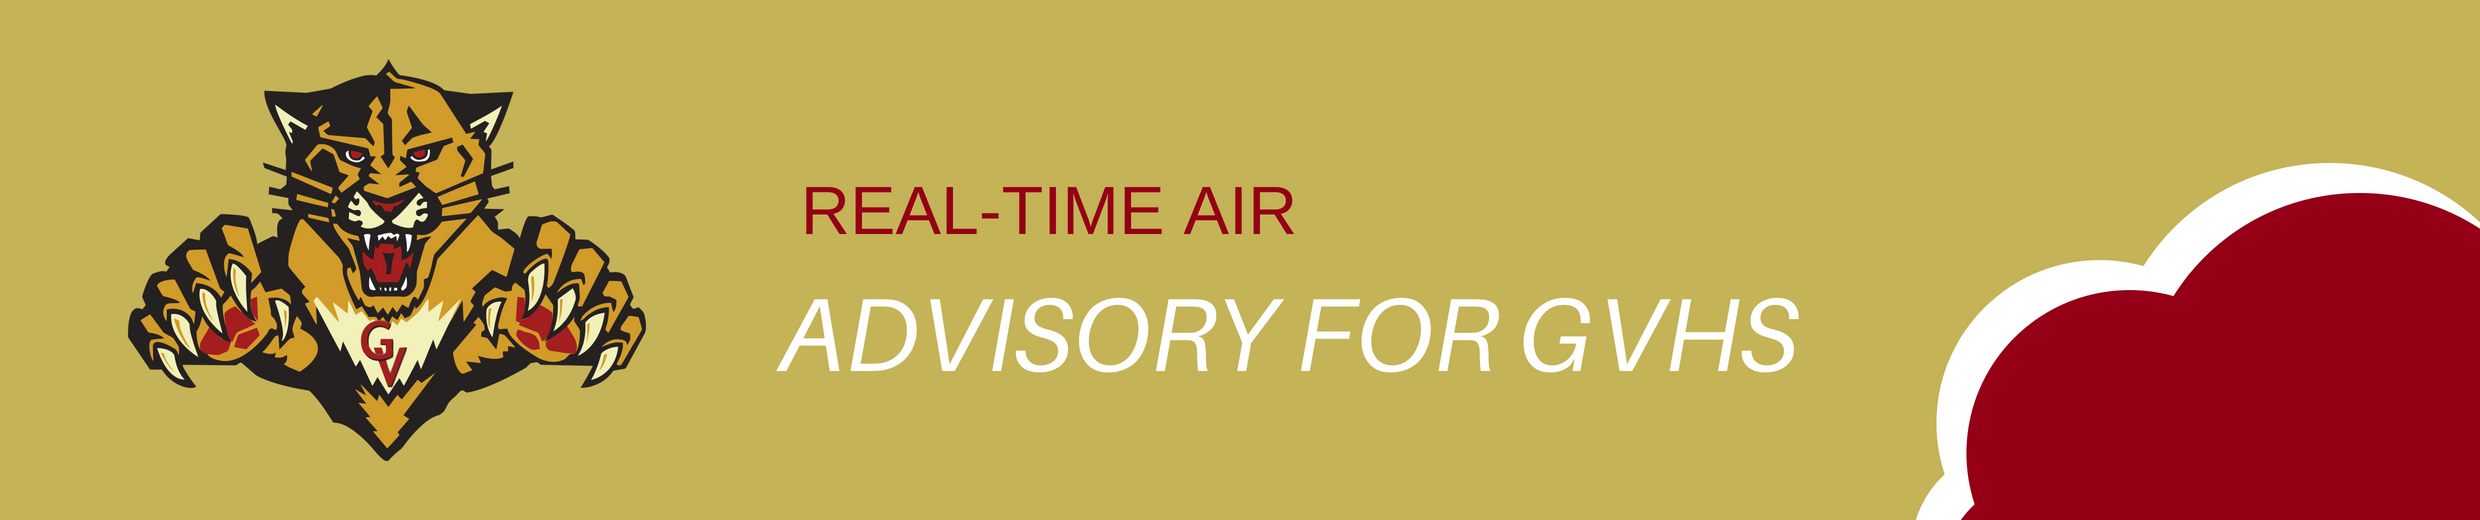 GV Real-Time Air Advisory